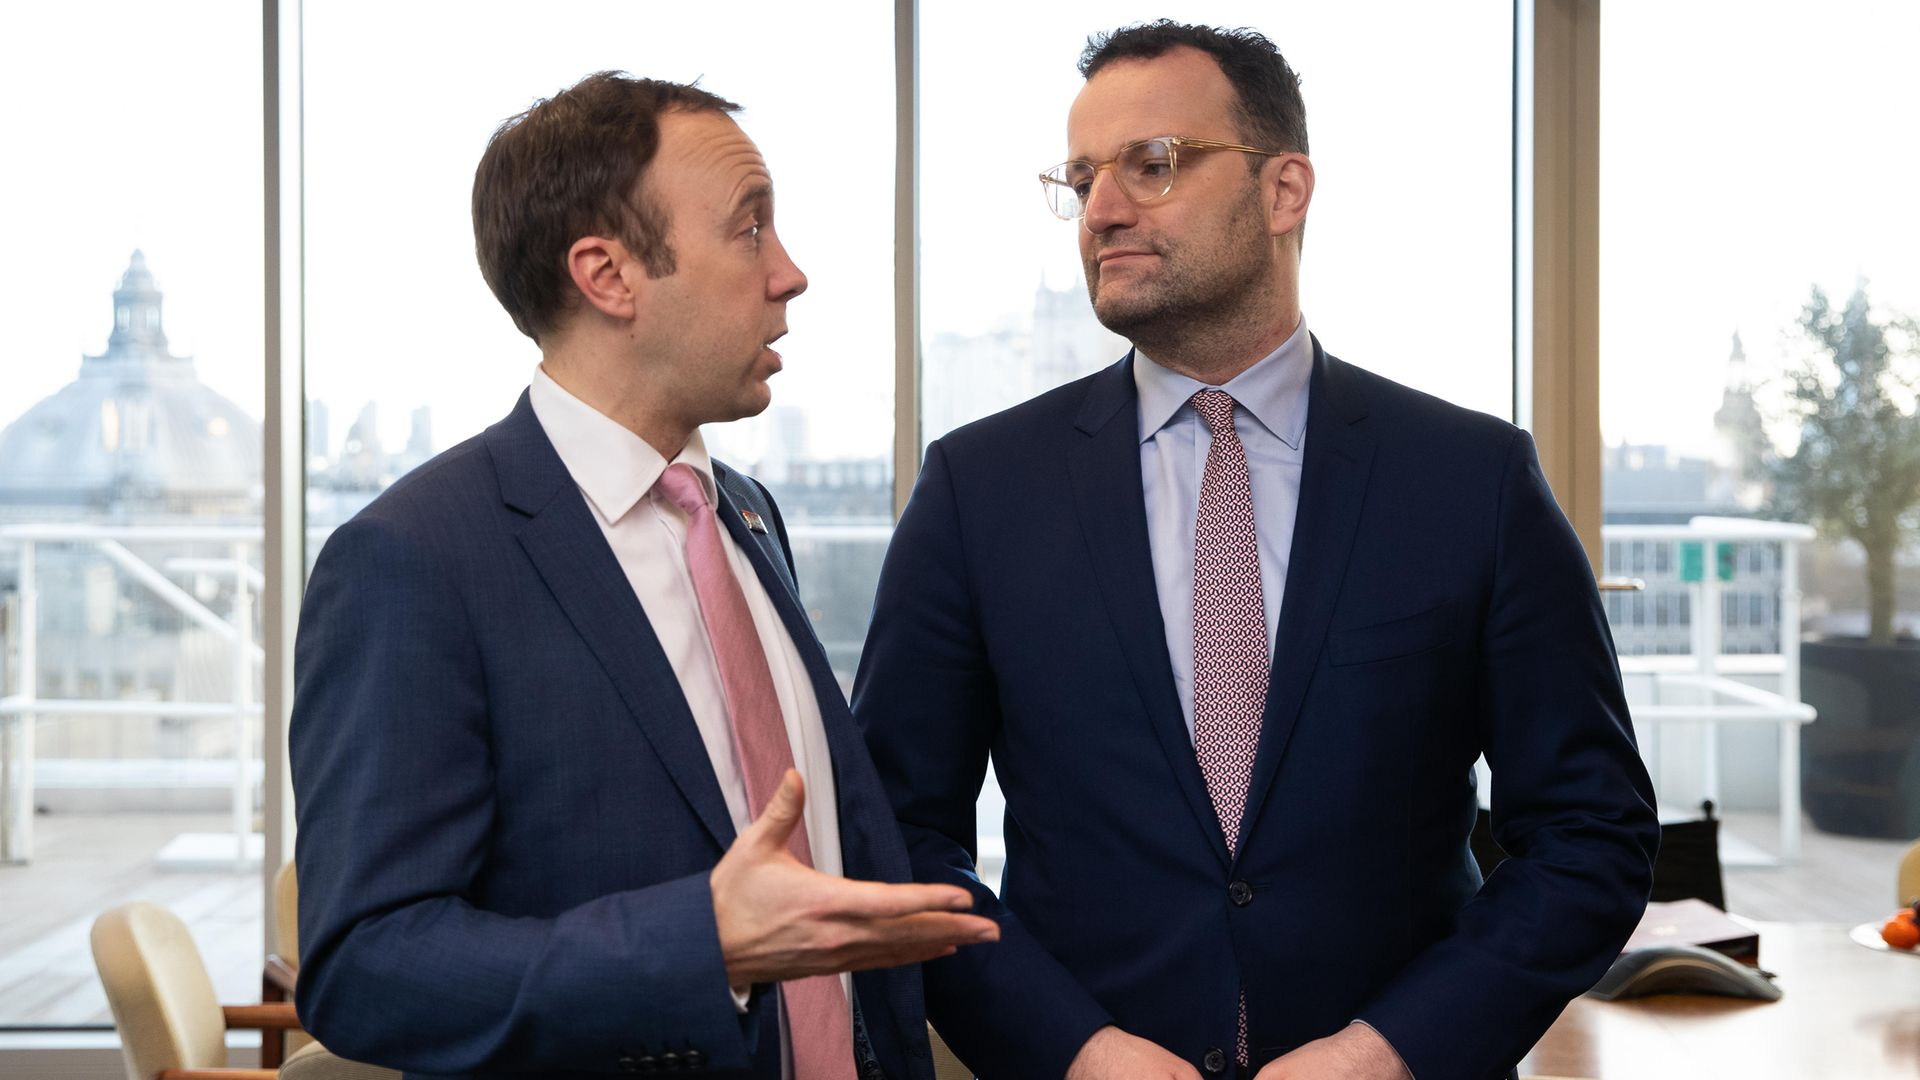 Health Secretary Matt Hancock (left) with German Health Minister Jens Spahn at the Department of Health, Westminster, London, ahead of a meeting about coordinating their response to the coronavirus - Credit: PA